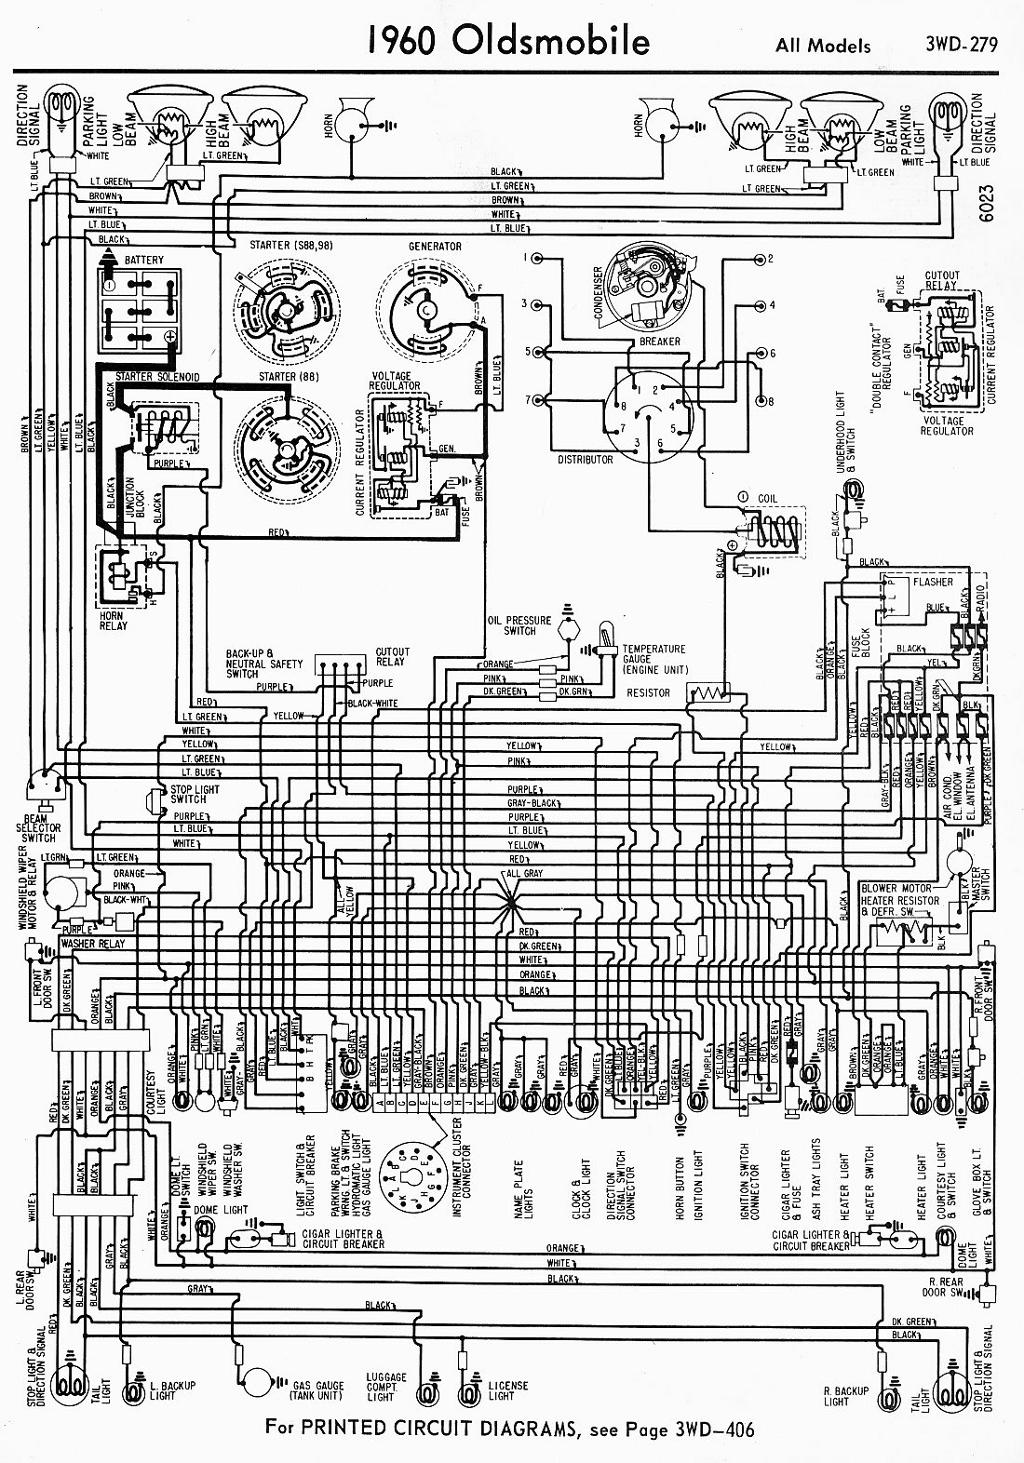 Oldsmobile Car Pdf Manual Wiring Diagram Fault Codes Dtc